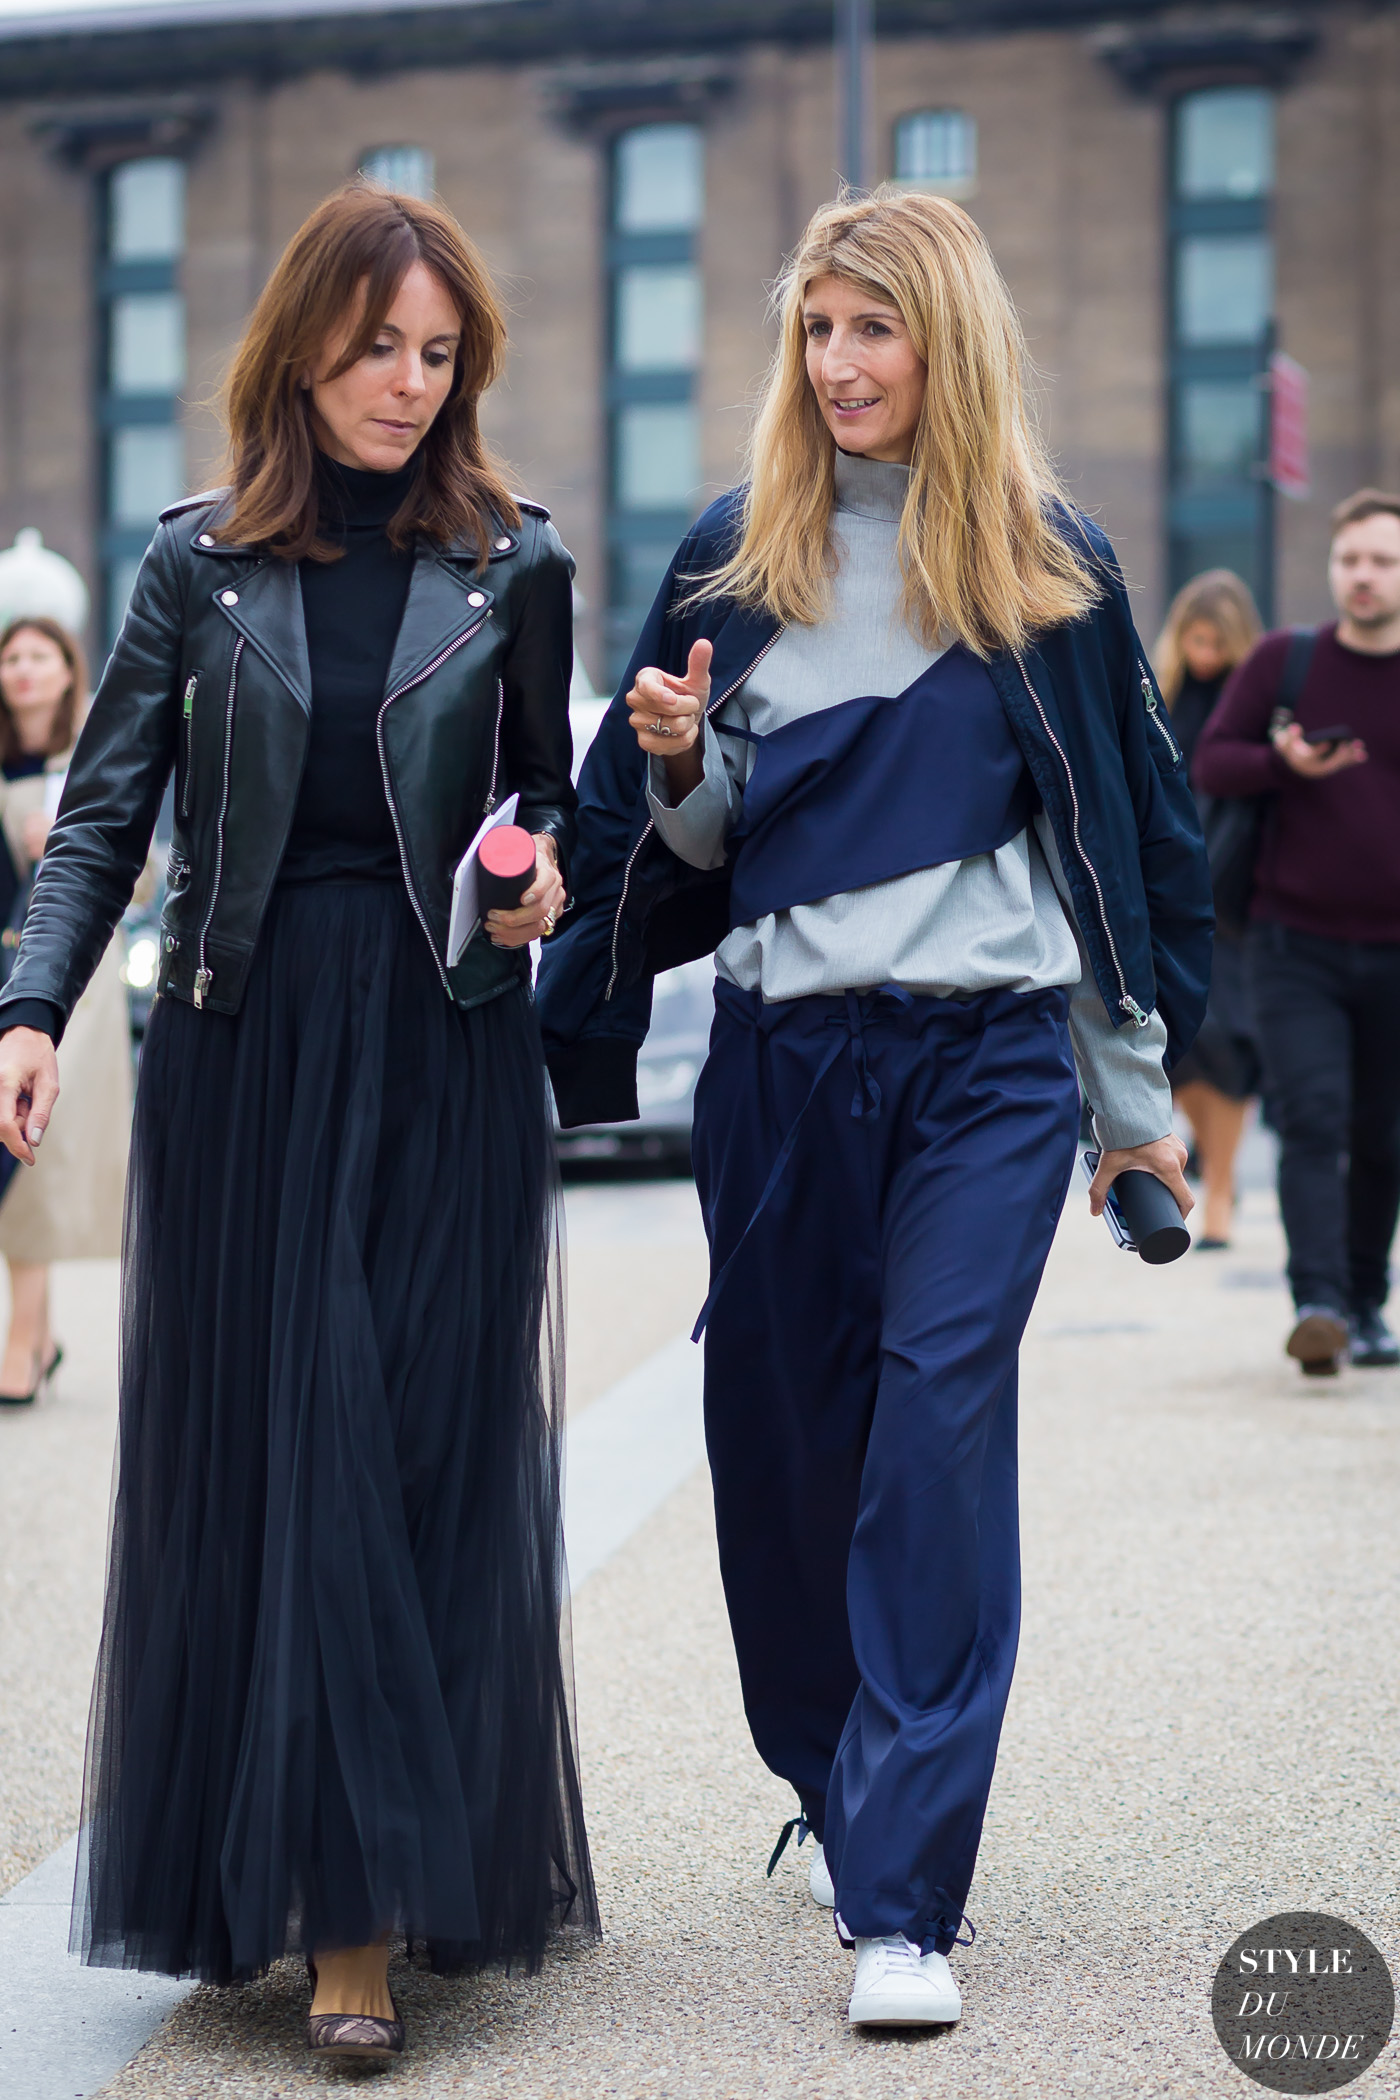 Alison Loehnis and Sarah Rutson Street Style Street Fashion Streetsnaps by STYLEDUMONDE Street Style Fashion Photography